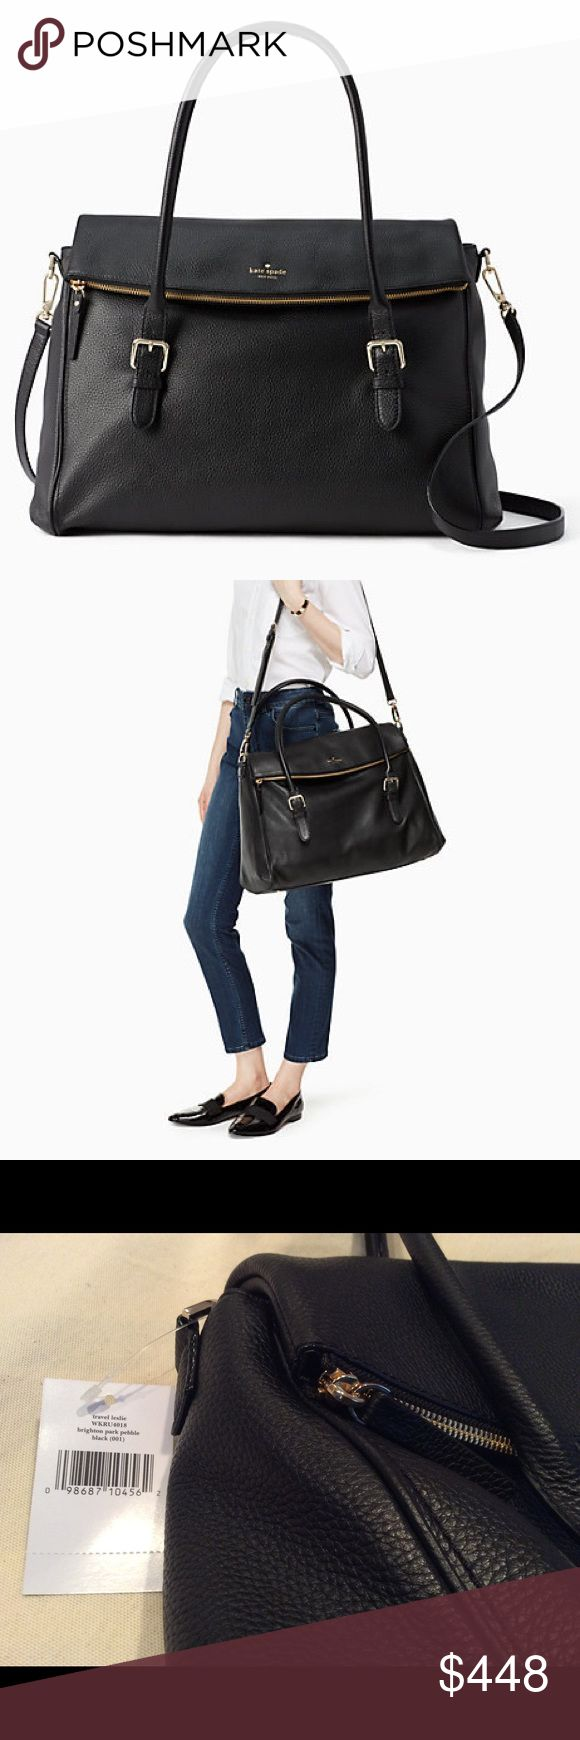 Kate Spade Brighton Park Pebble Travel Leslie Absolutely beautiful Kate Spade Travel Leslie, brand new with tags! This is the perfect size for a weekend getaway! kate spade Bags Travel Bags